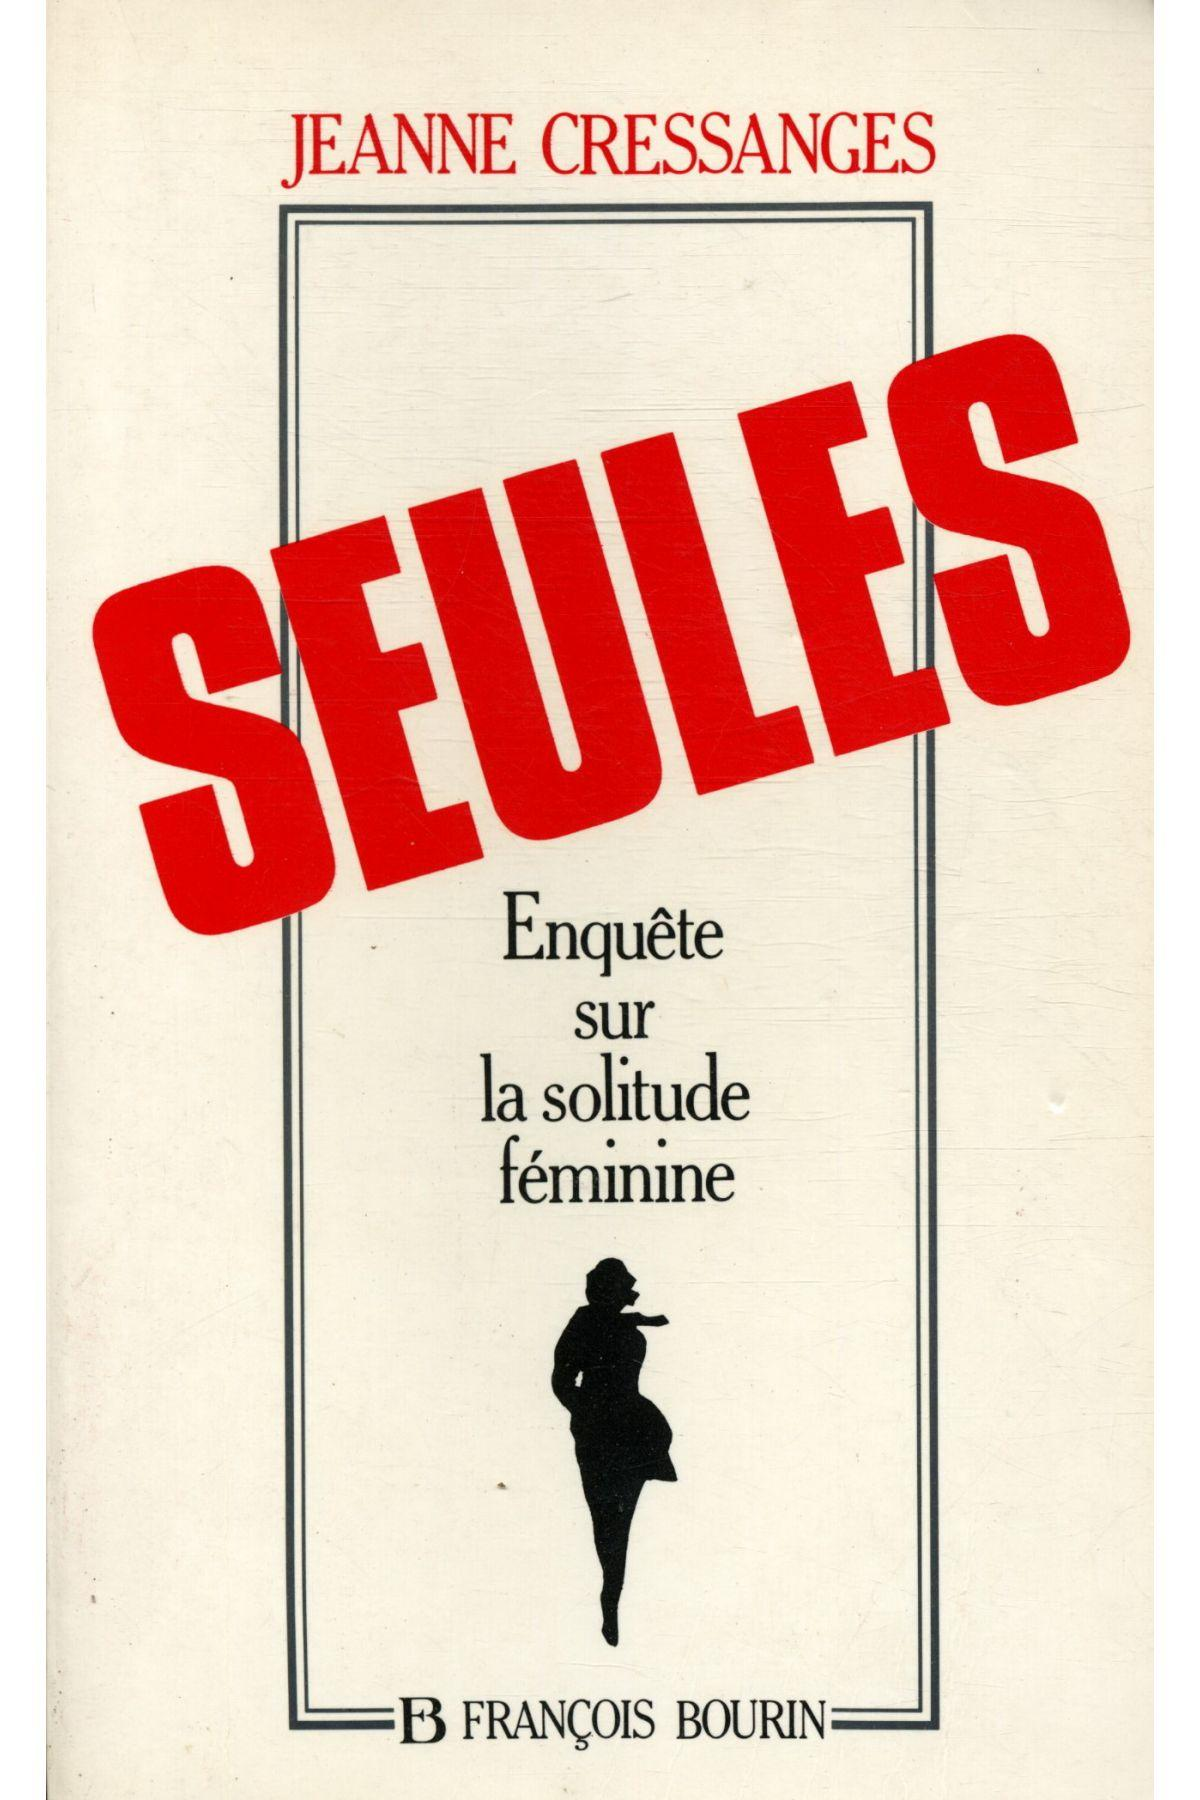 Seules  - Jeanne Cressanges